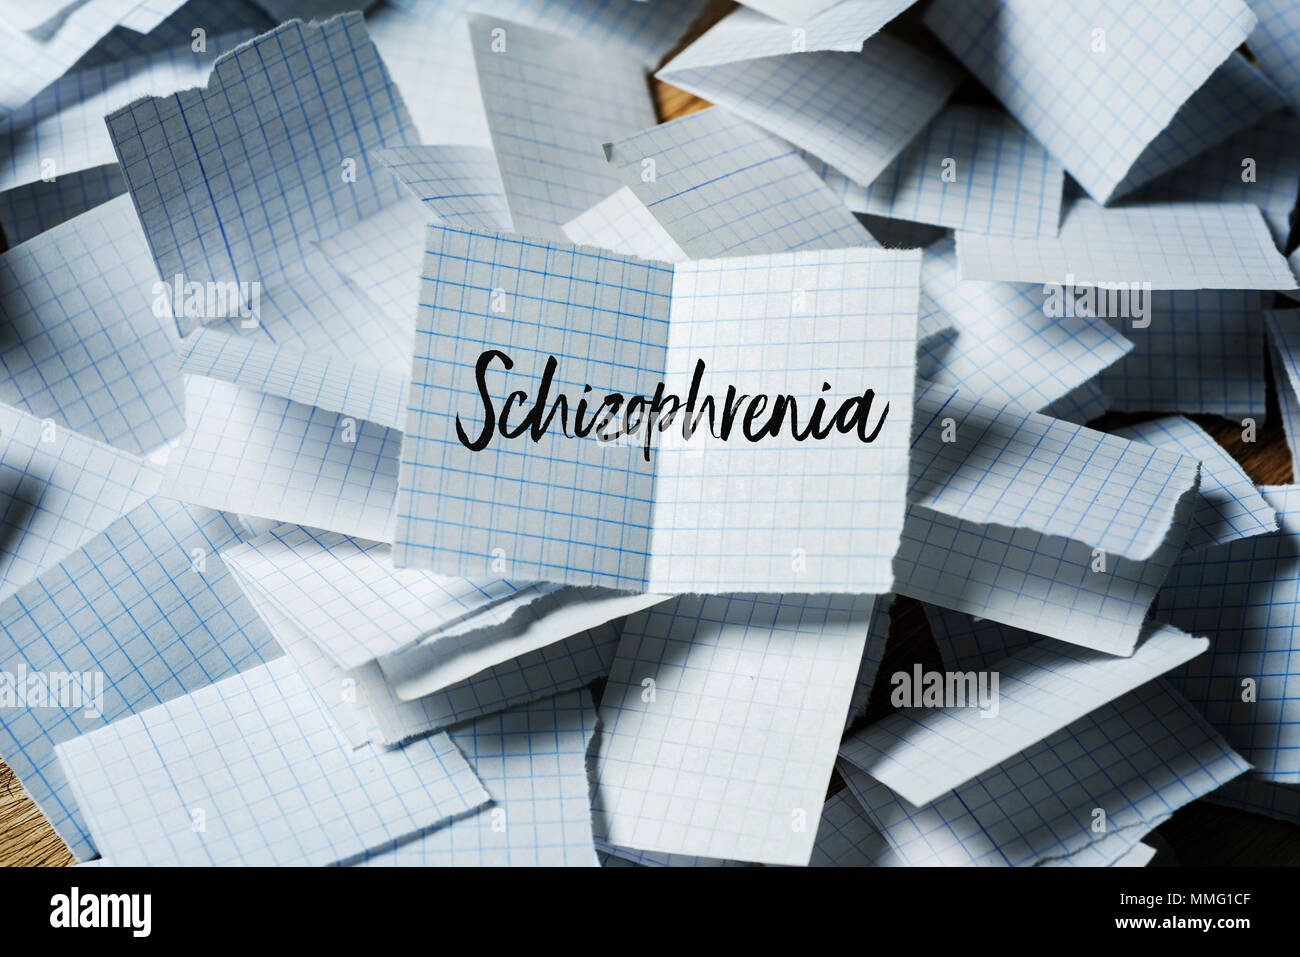 a pile of pieces of paper folded in half, and the text schizophrenia in one of them unfolded on top - Stock Image